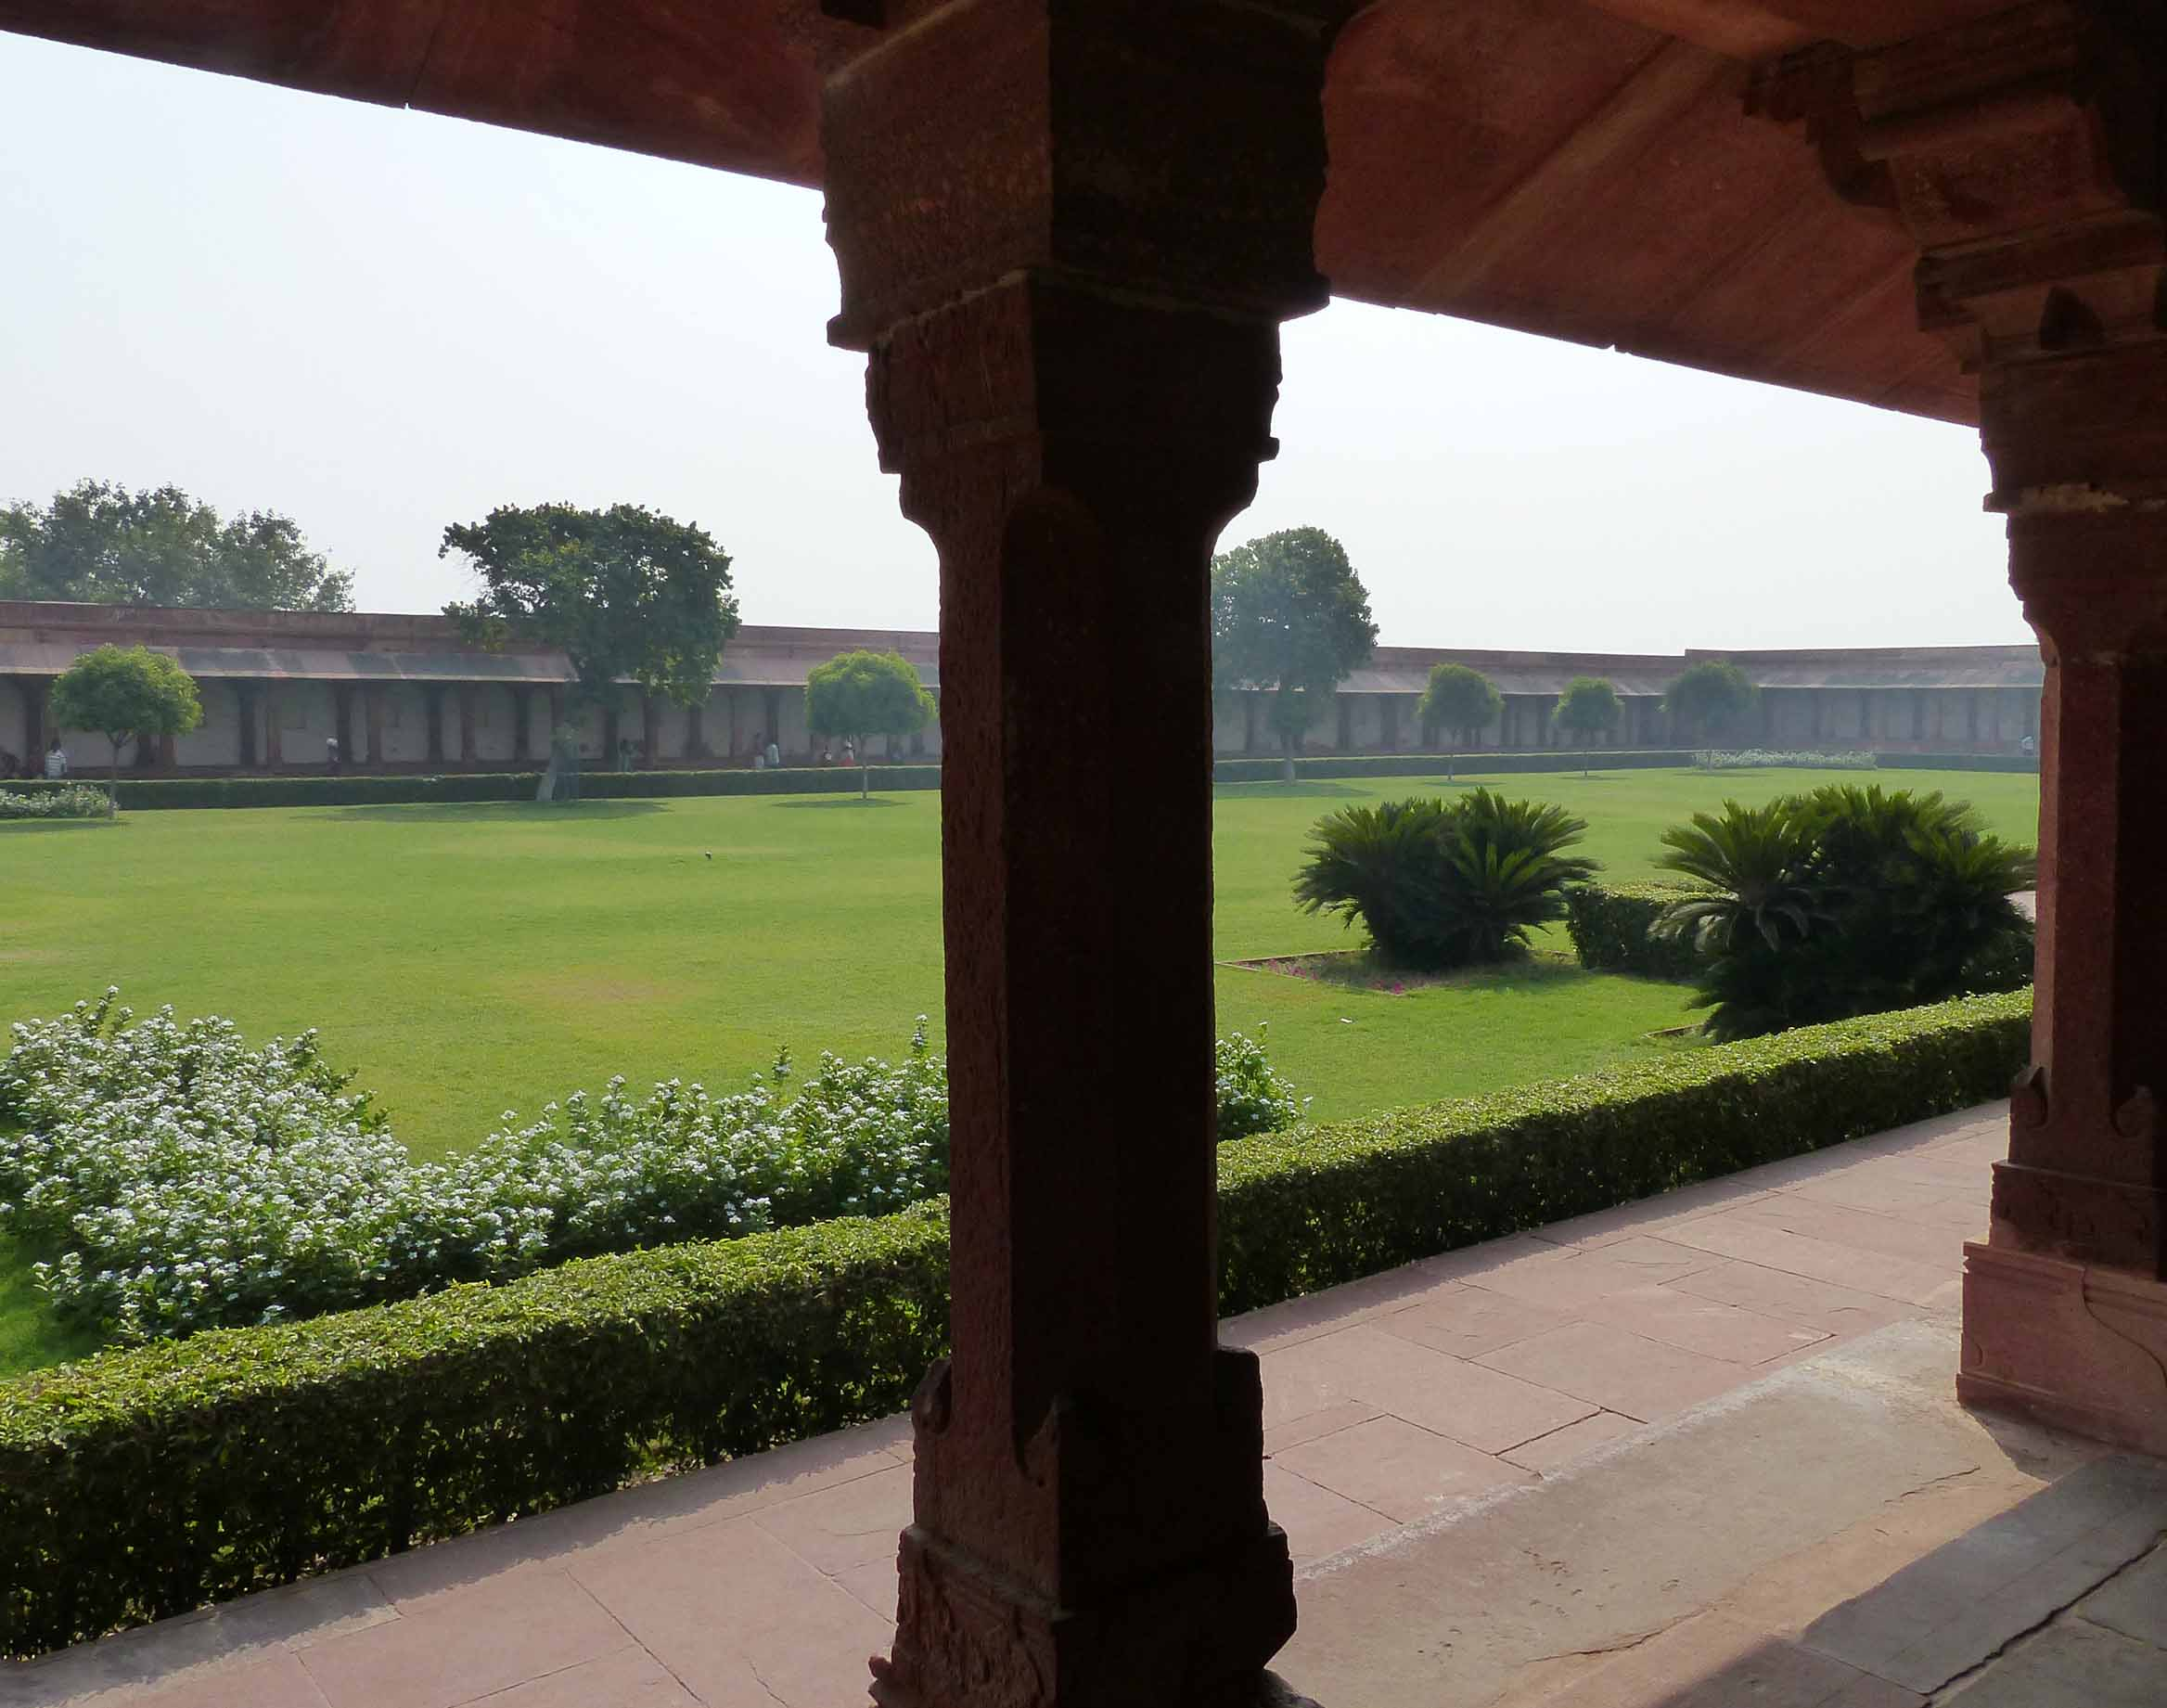 Large courtyard with lawn and surrounding arcade